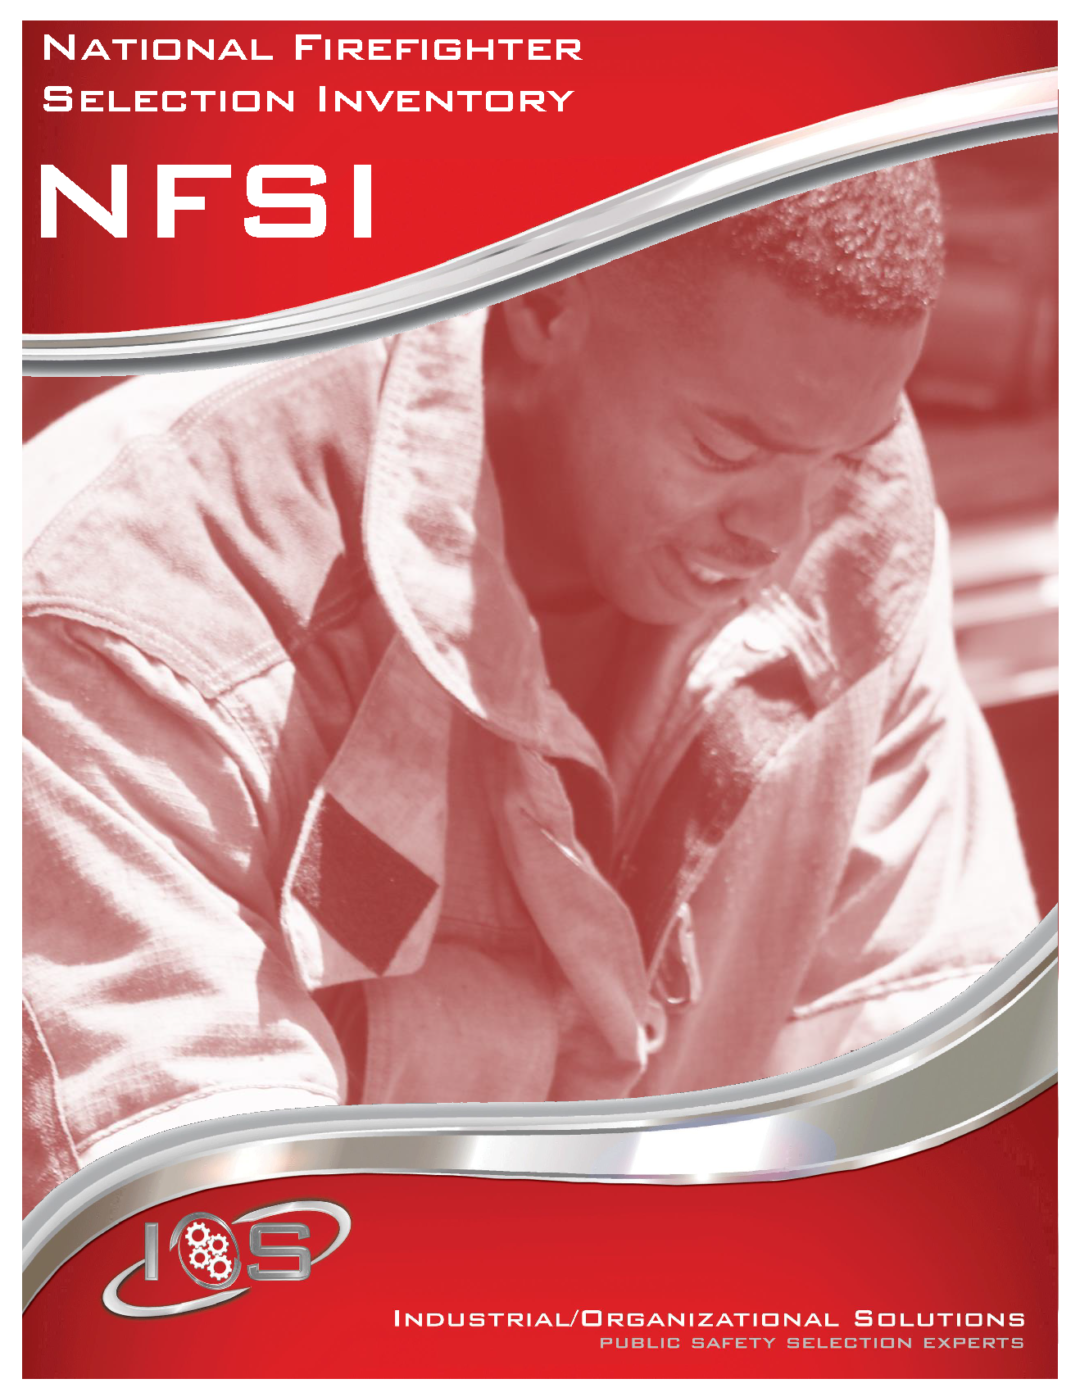 National Firefighter Selection Inventory - NFSI